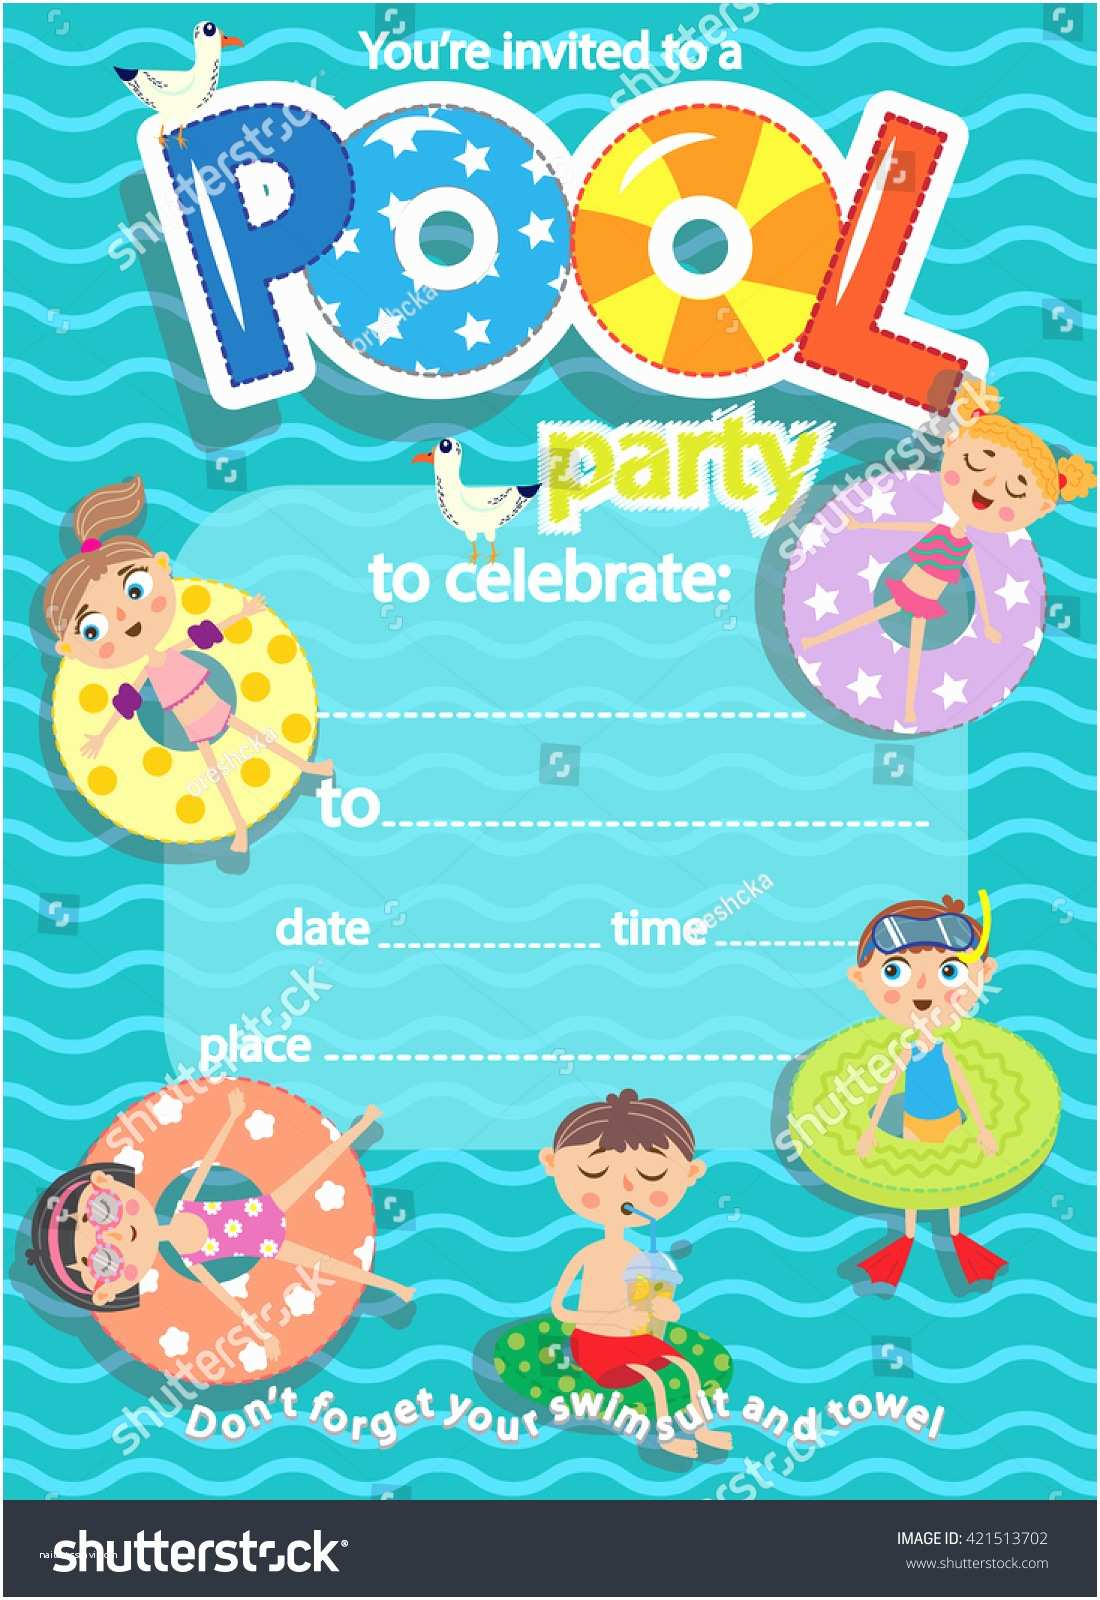 Pool Party Invitations Templates Free Pool Party Invitation Template Card Kids Stock Vector